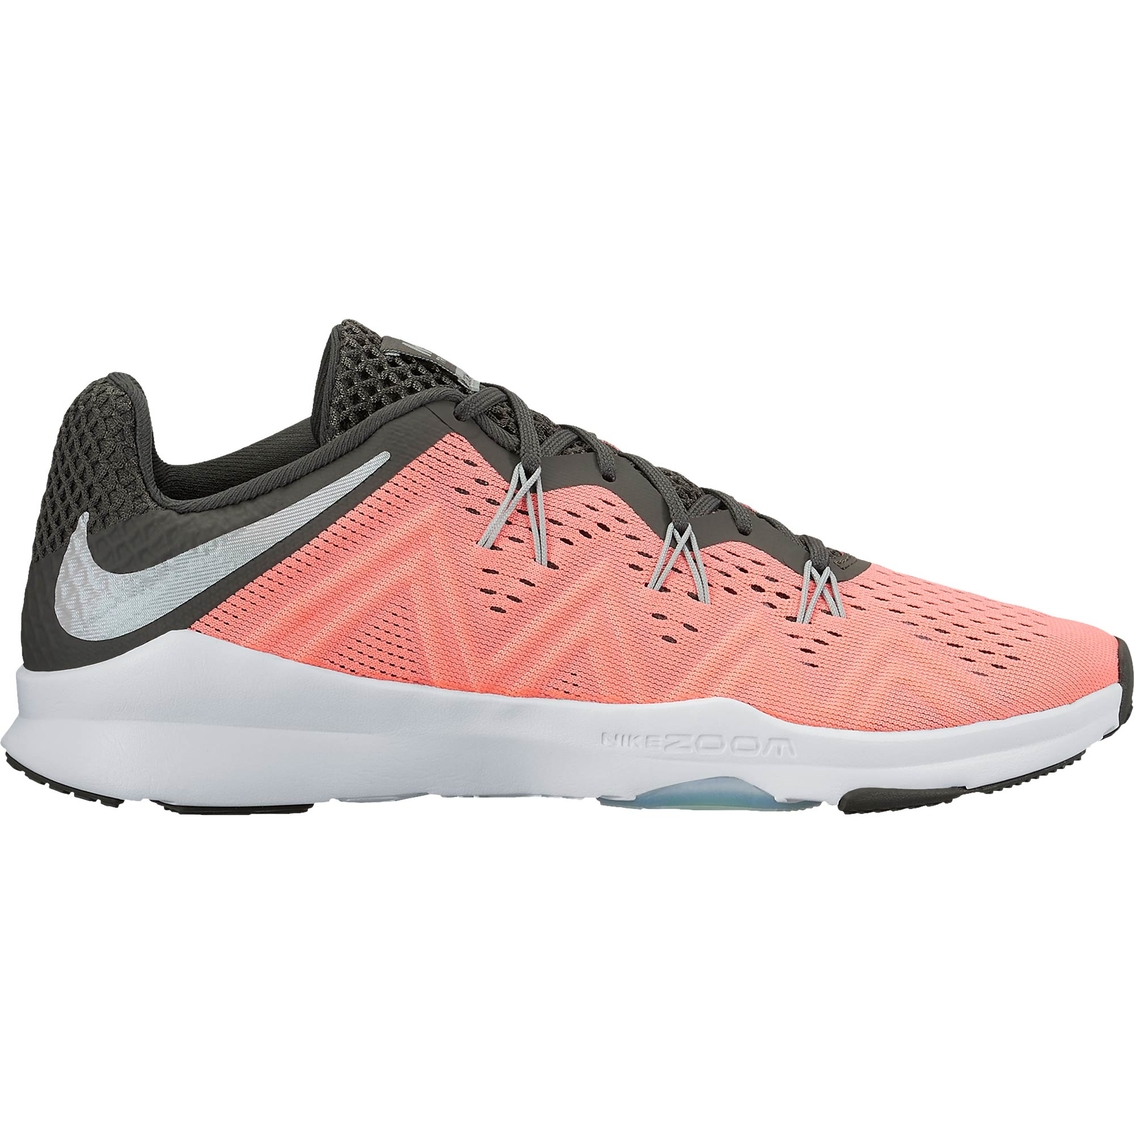 0f47aa505587 Nike Women s Zoom Condition Tr Training Shoes